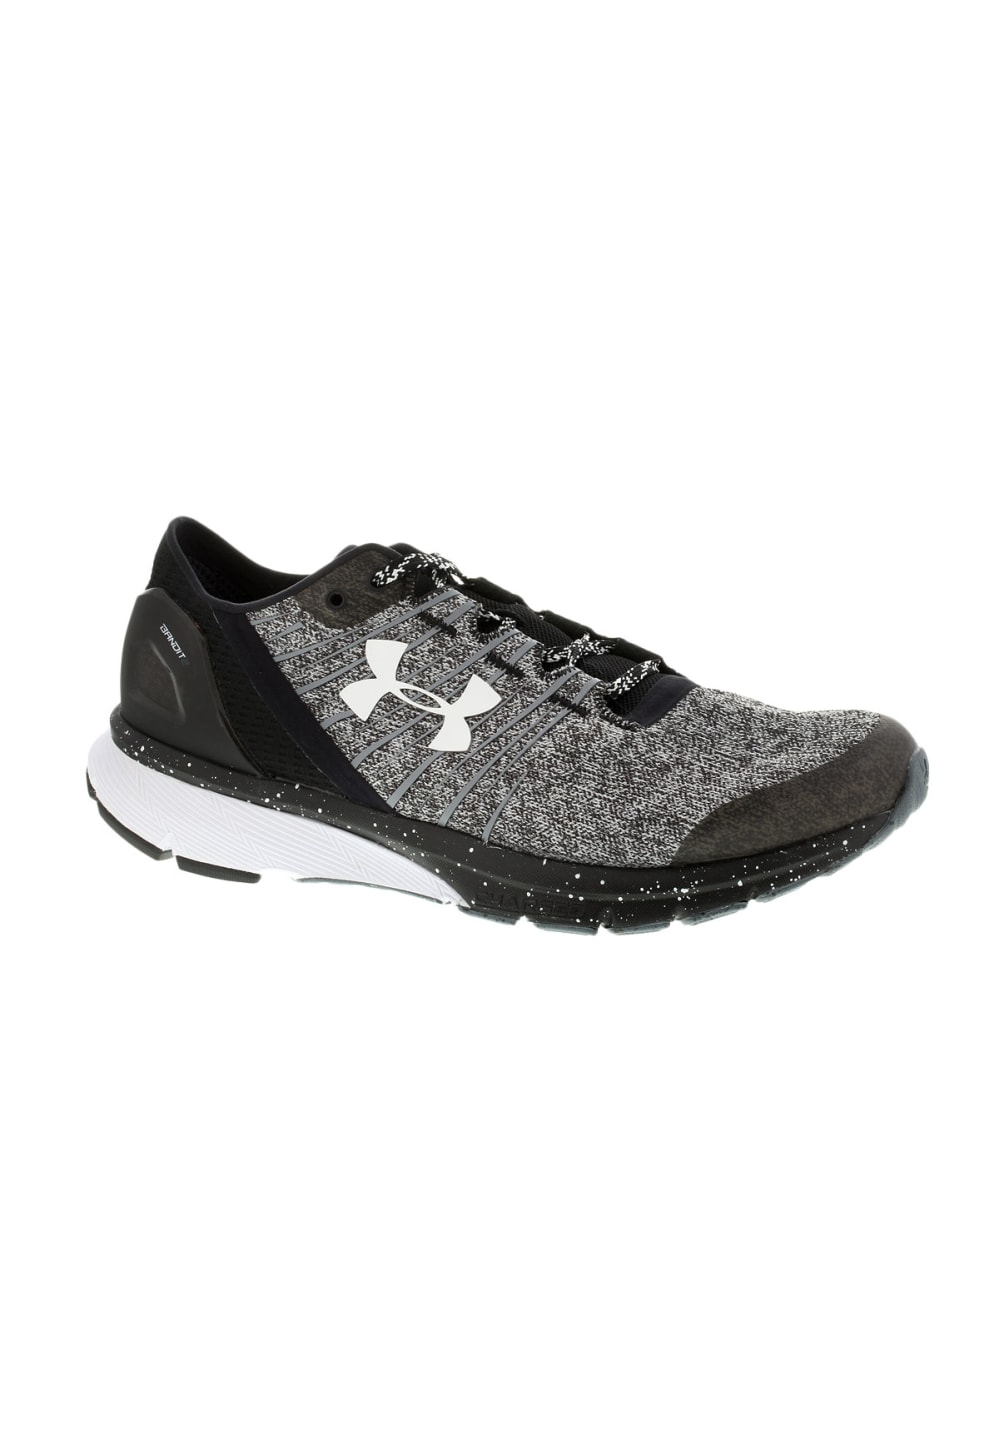 sale retailer 17de2 69540 Under Armour Charged Bandit 2 - Running shoes for Women - Black